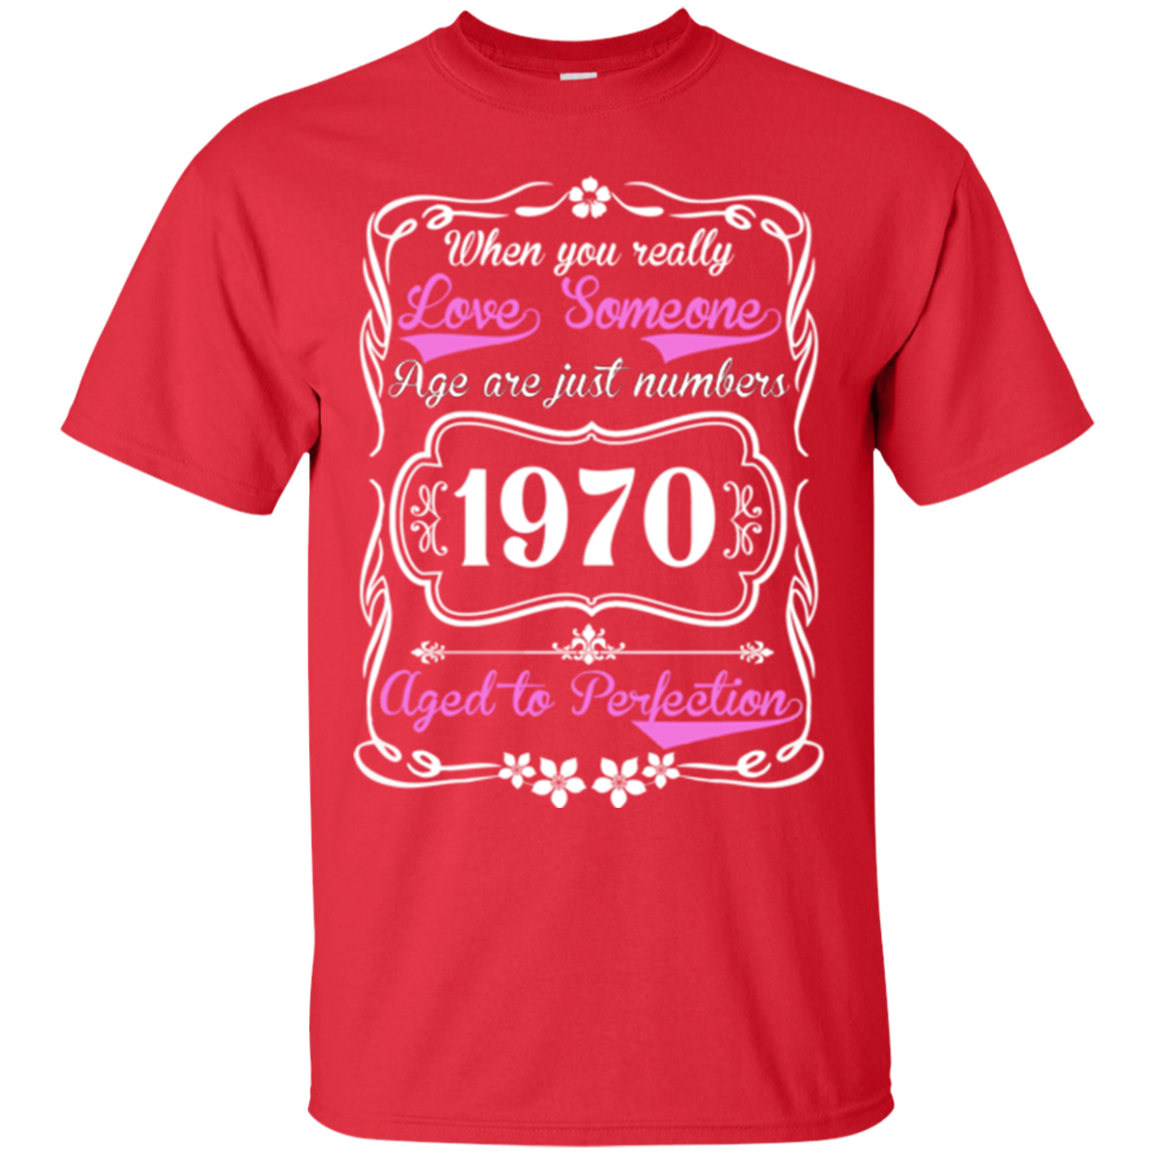 1970 Shirts When You Really Love Someone Age Are Just Number 1970 Aged To Perfection Hoodies Sweatshirts